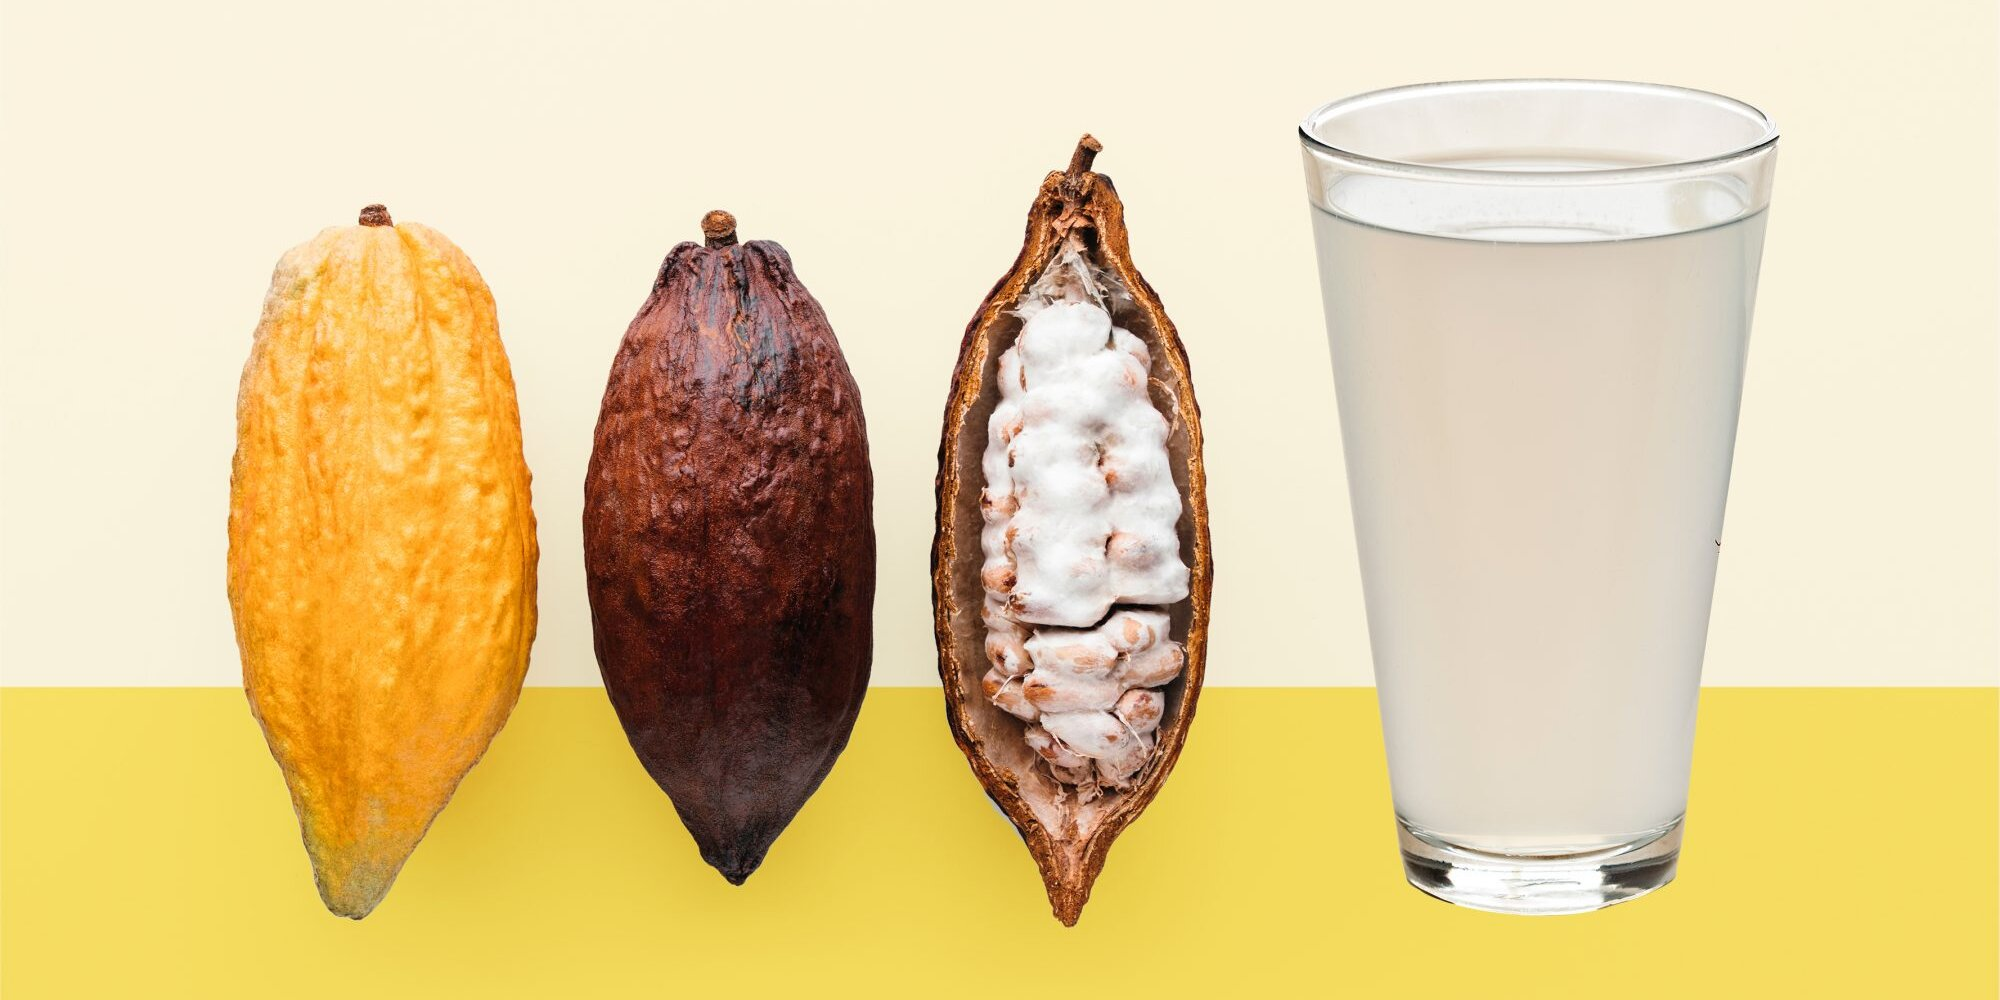 Cacao Water Is the Healthy, Refreshing Beverage Everyone Is Buzzing About